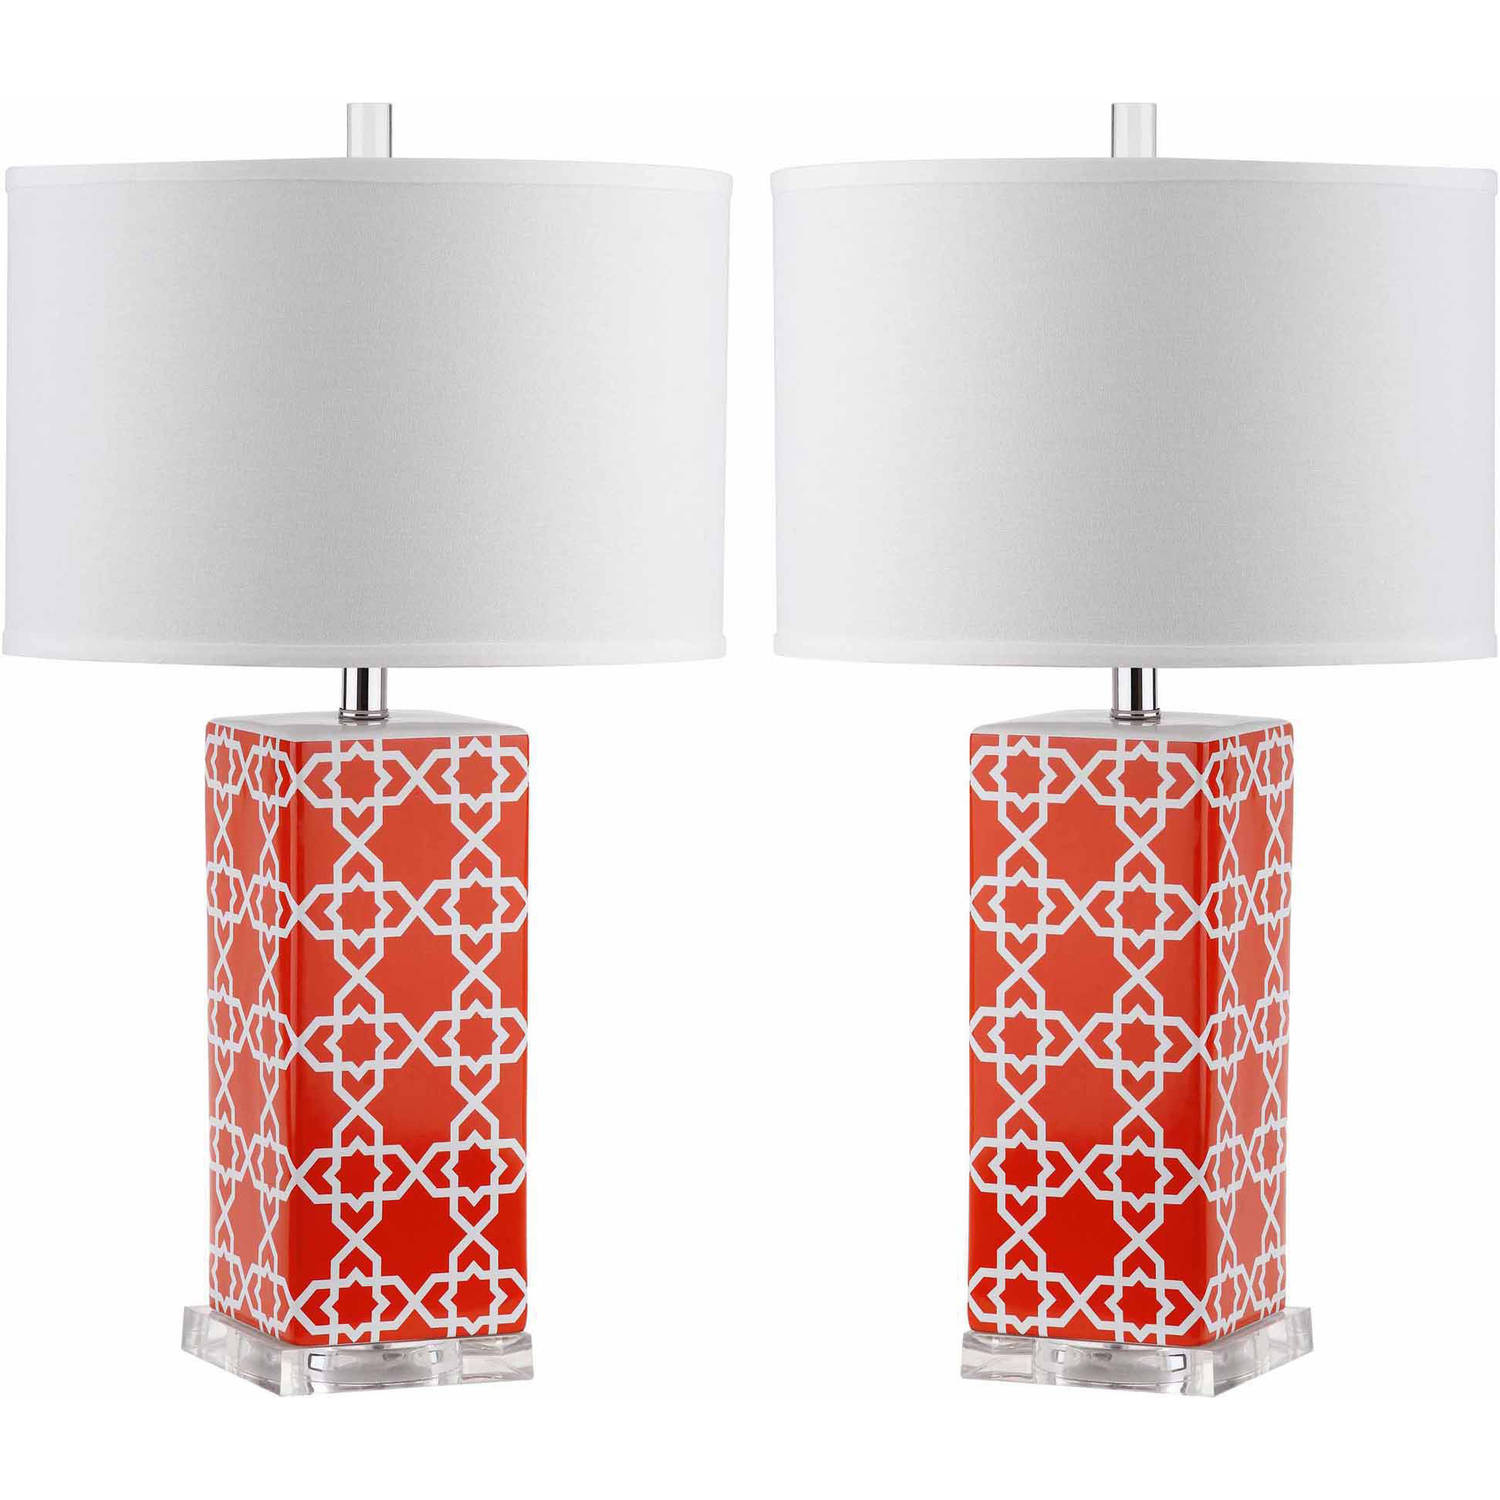 Safavieh Quatrefoil Table Lamp with CFL Bulb, Multiple Colors, Set of 2